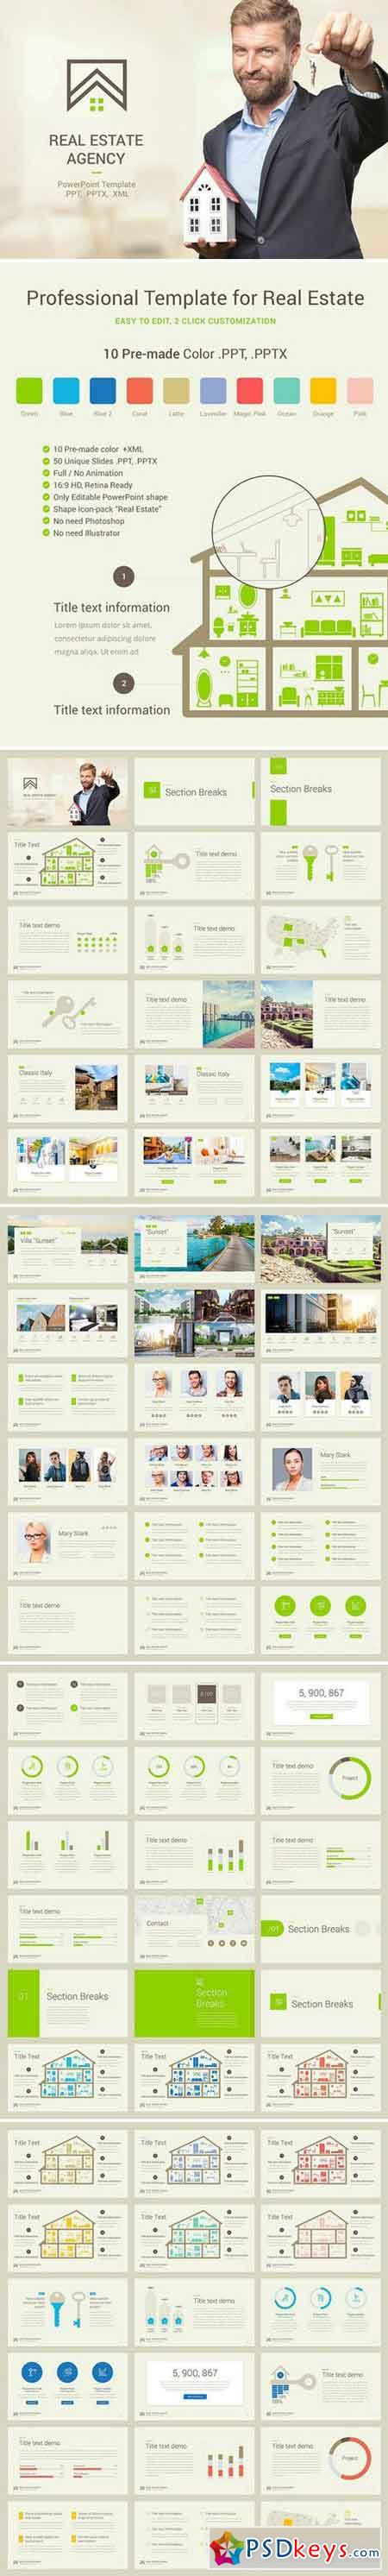 Real Estate PowerPoint Template 2042501